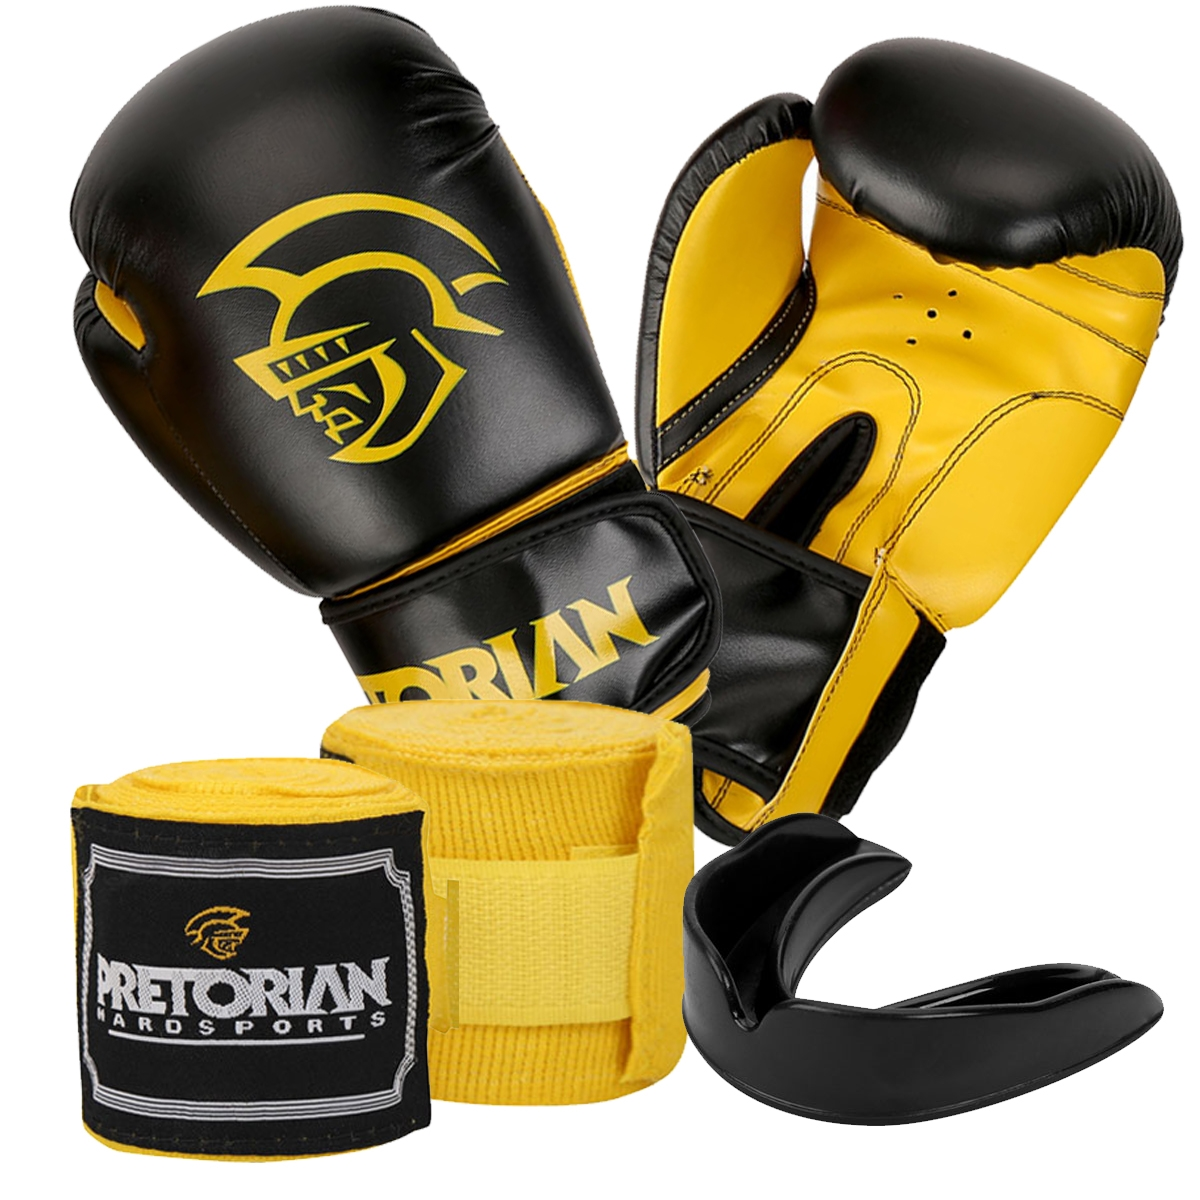 d9ac949e3 KIT BOXE MUAY THAI FIRST PRETORIAN BUCAL + BANDAGEM + LUVA 10 OZ ...